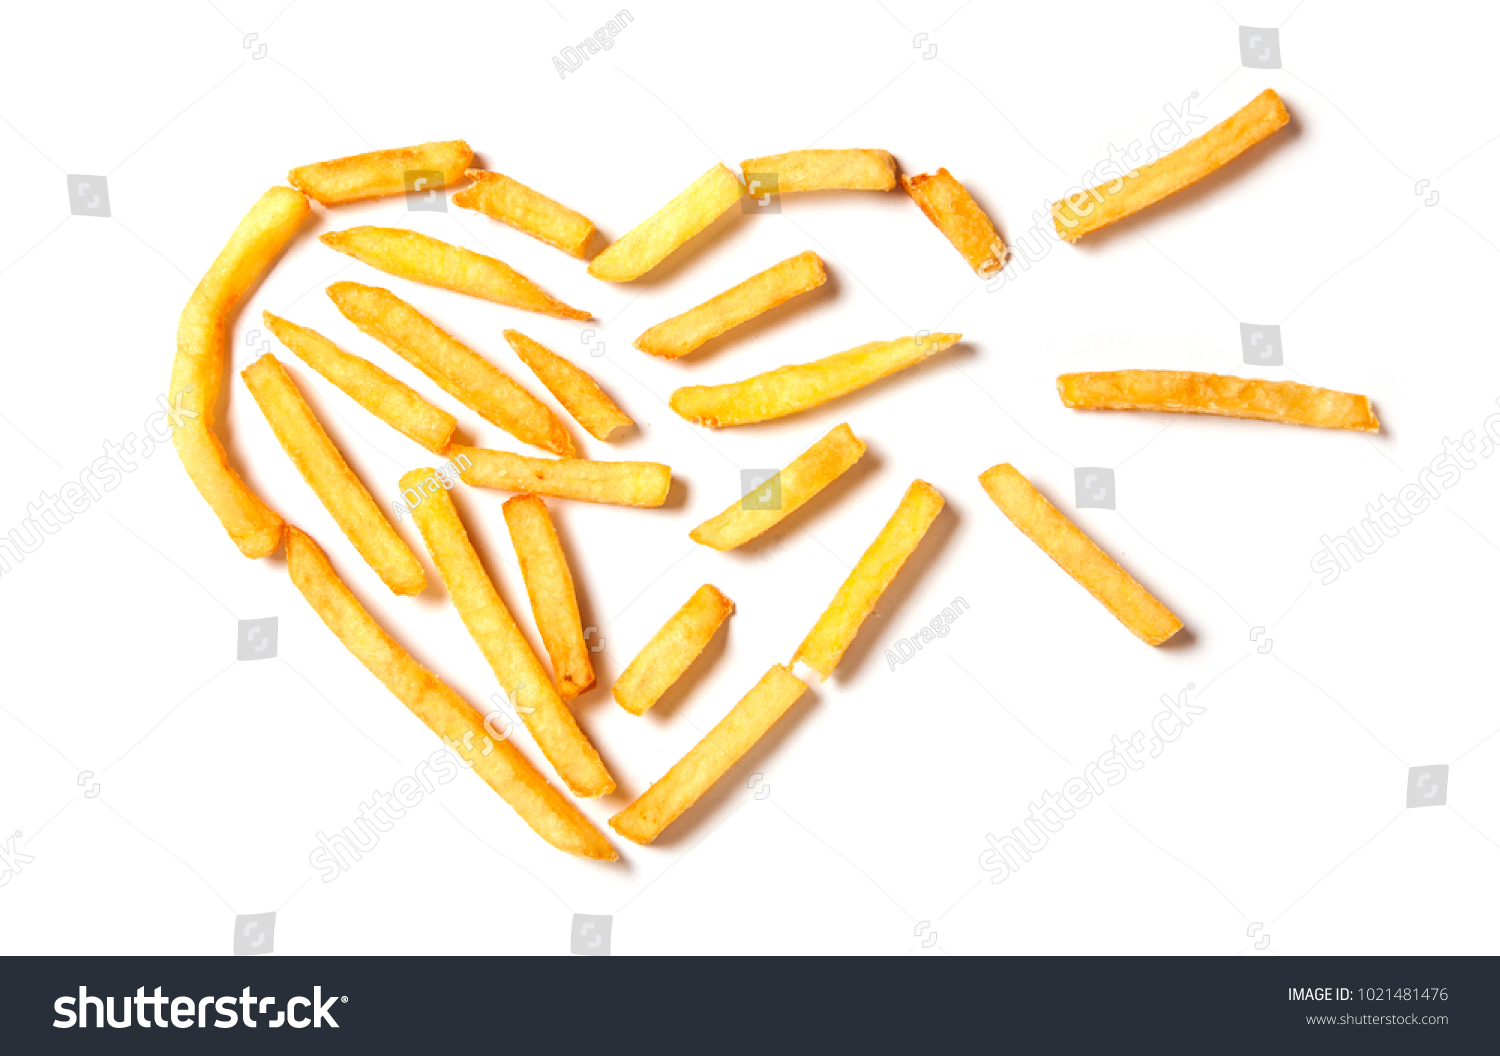 Fat kills french fries form tbroken stock photo 1021481476 fat kills french fries in the form of tbroken heart isolated on white background biocorpaavc